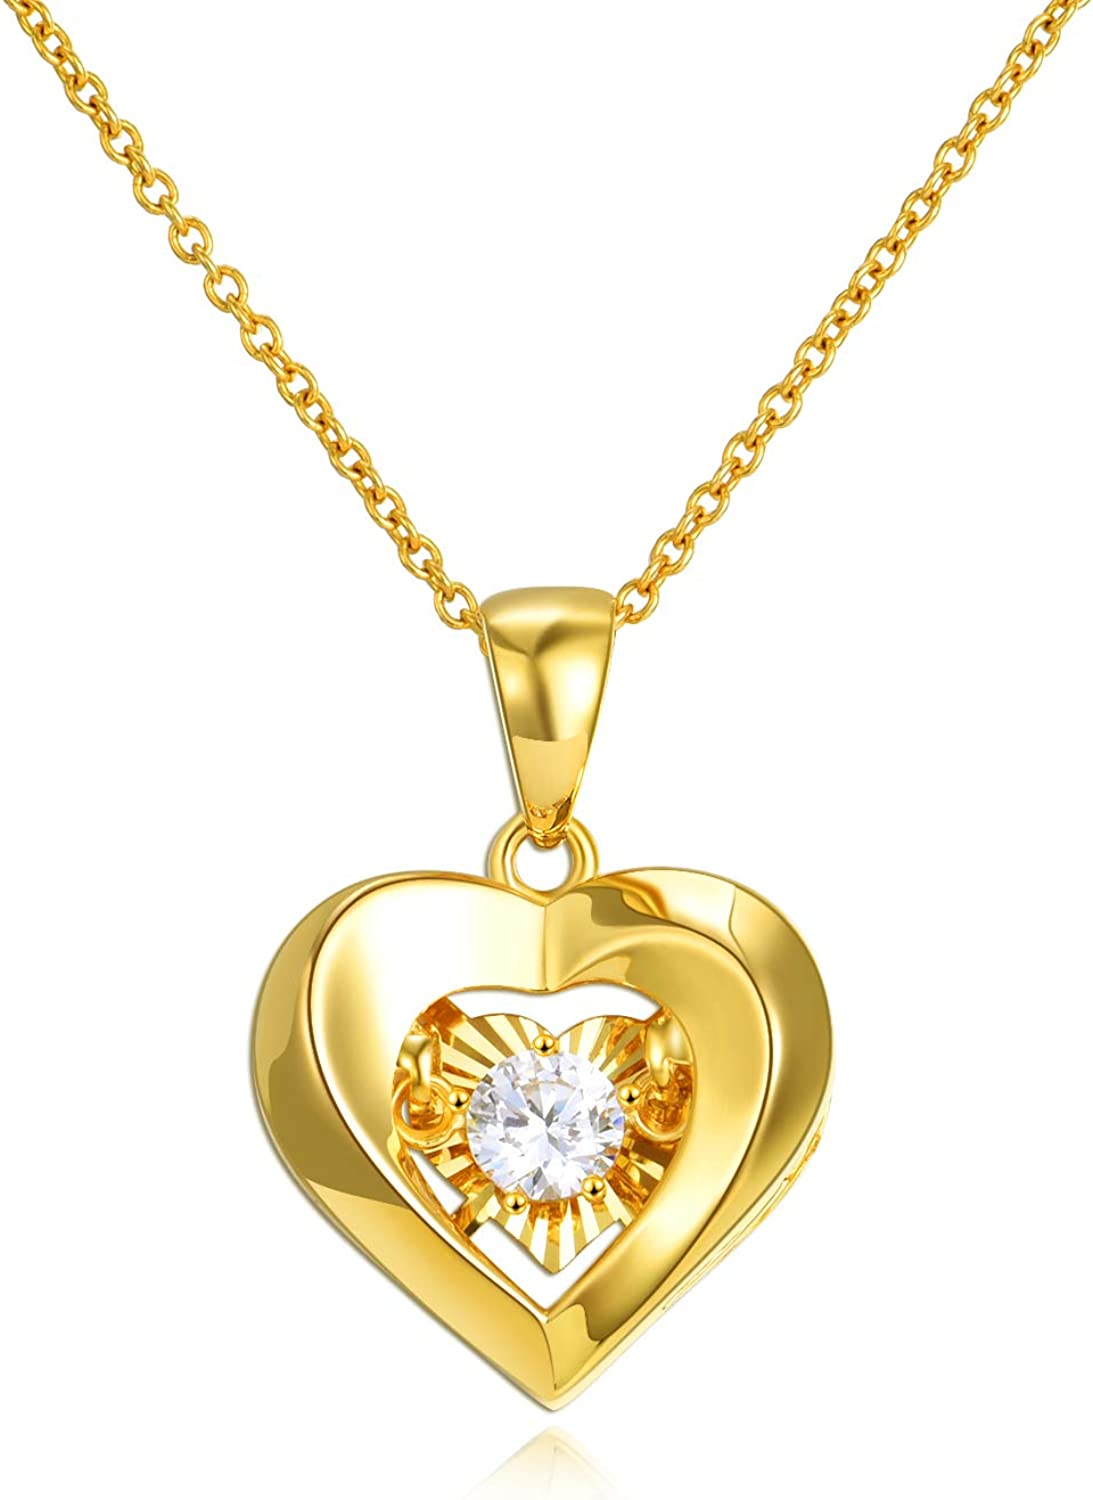 18k Gold Heart Jewelry Necklace for Women, Solid Gold Chain and Pendant...